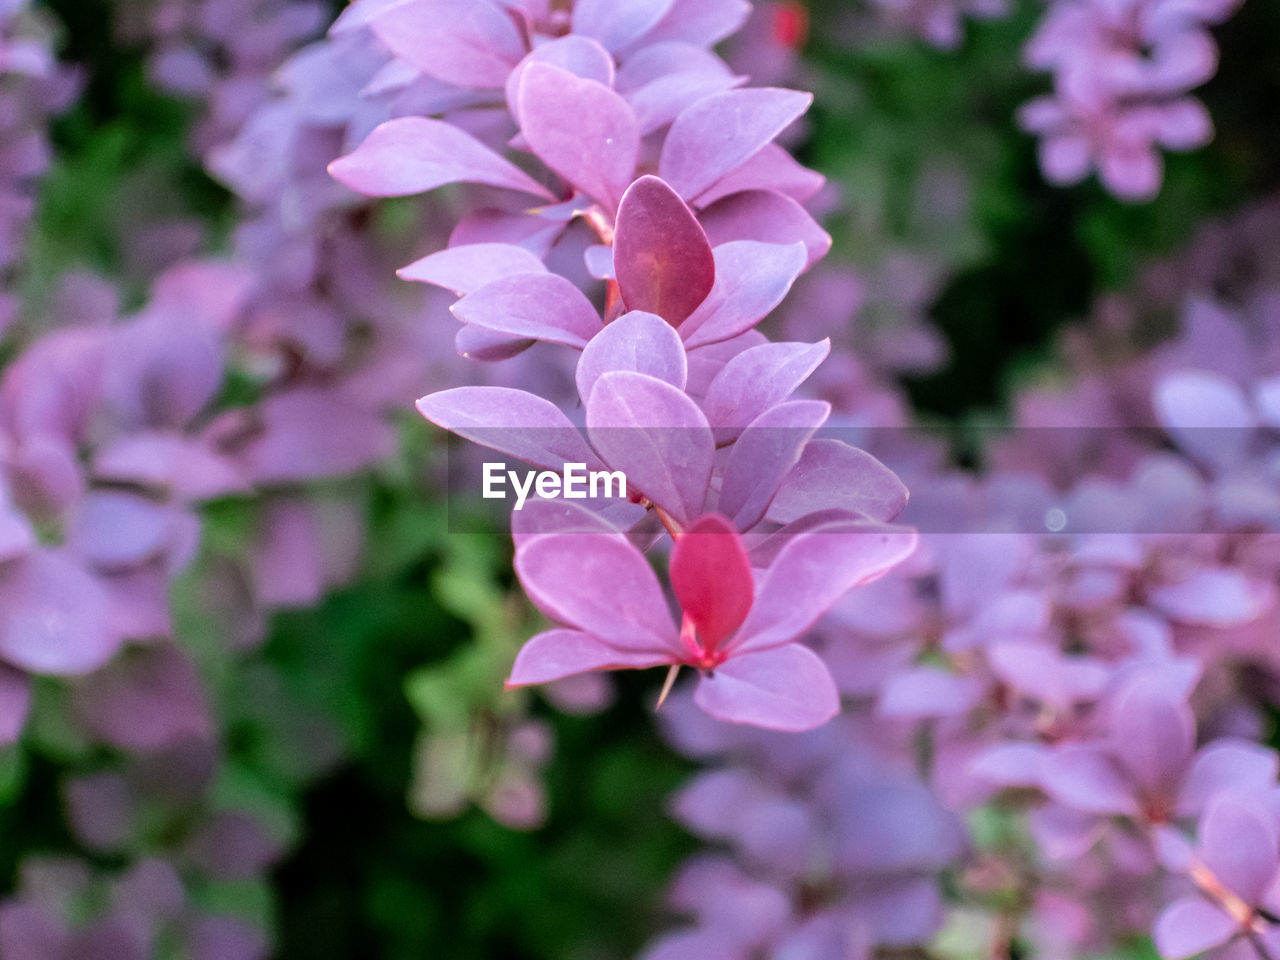 flower, flowering plant, petal, plant, beauty in nature, freshness, close-up, fragility, vulnerability, growth, pink color, flower head, inflorescence, no people, focus on foreground, nature, day, outdoors, botany, selective focus, purple